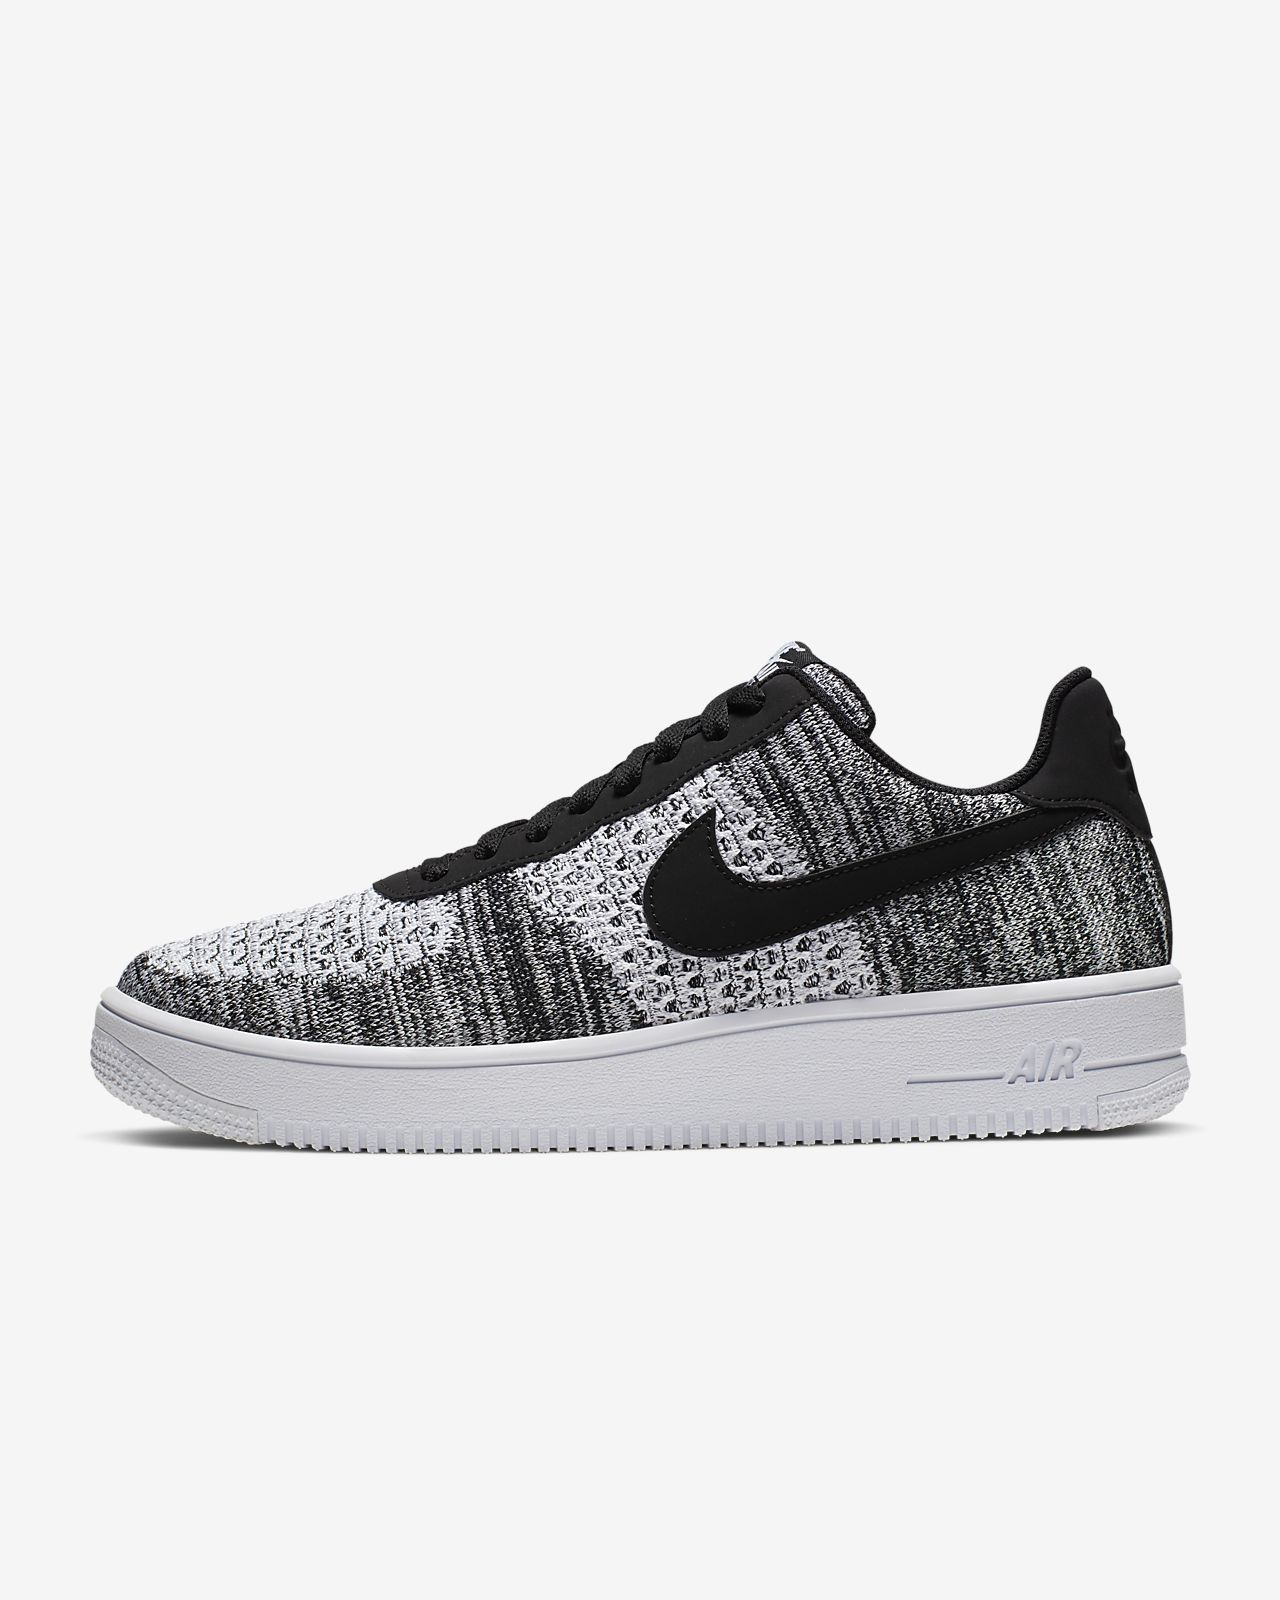 db3aae21 Кроссовки Nike Air Force 1 Flyknit 2.0. Nike.com RU